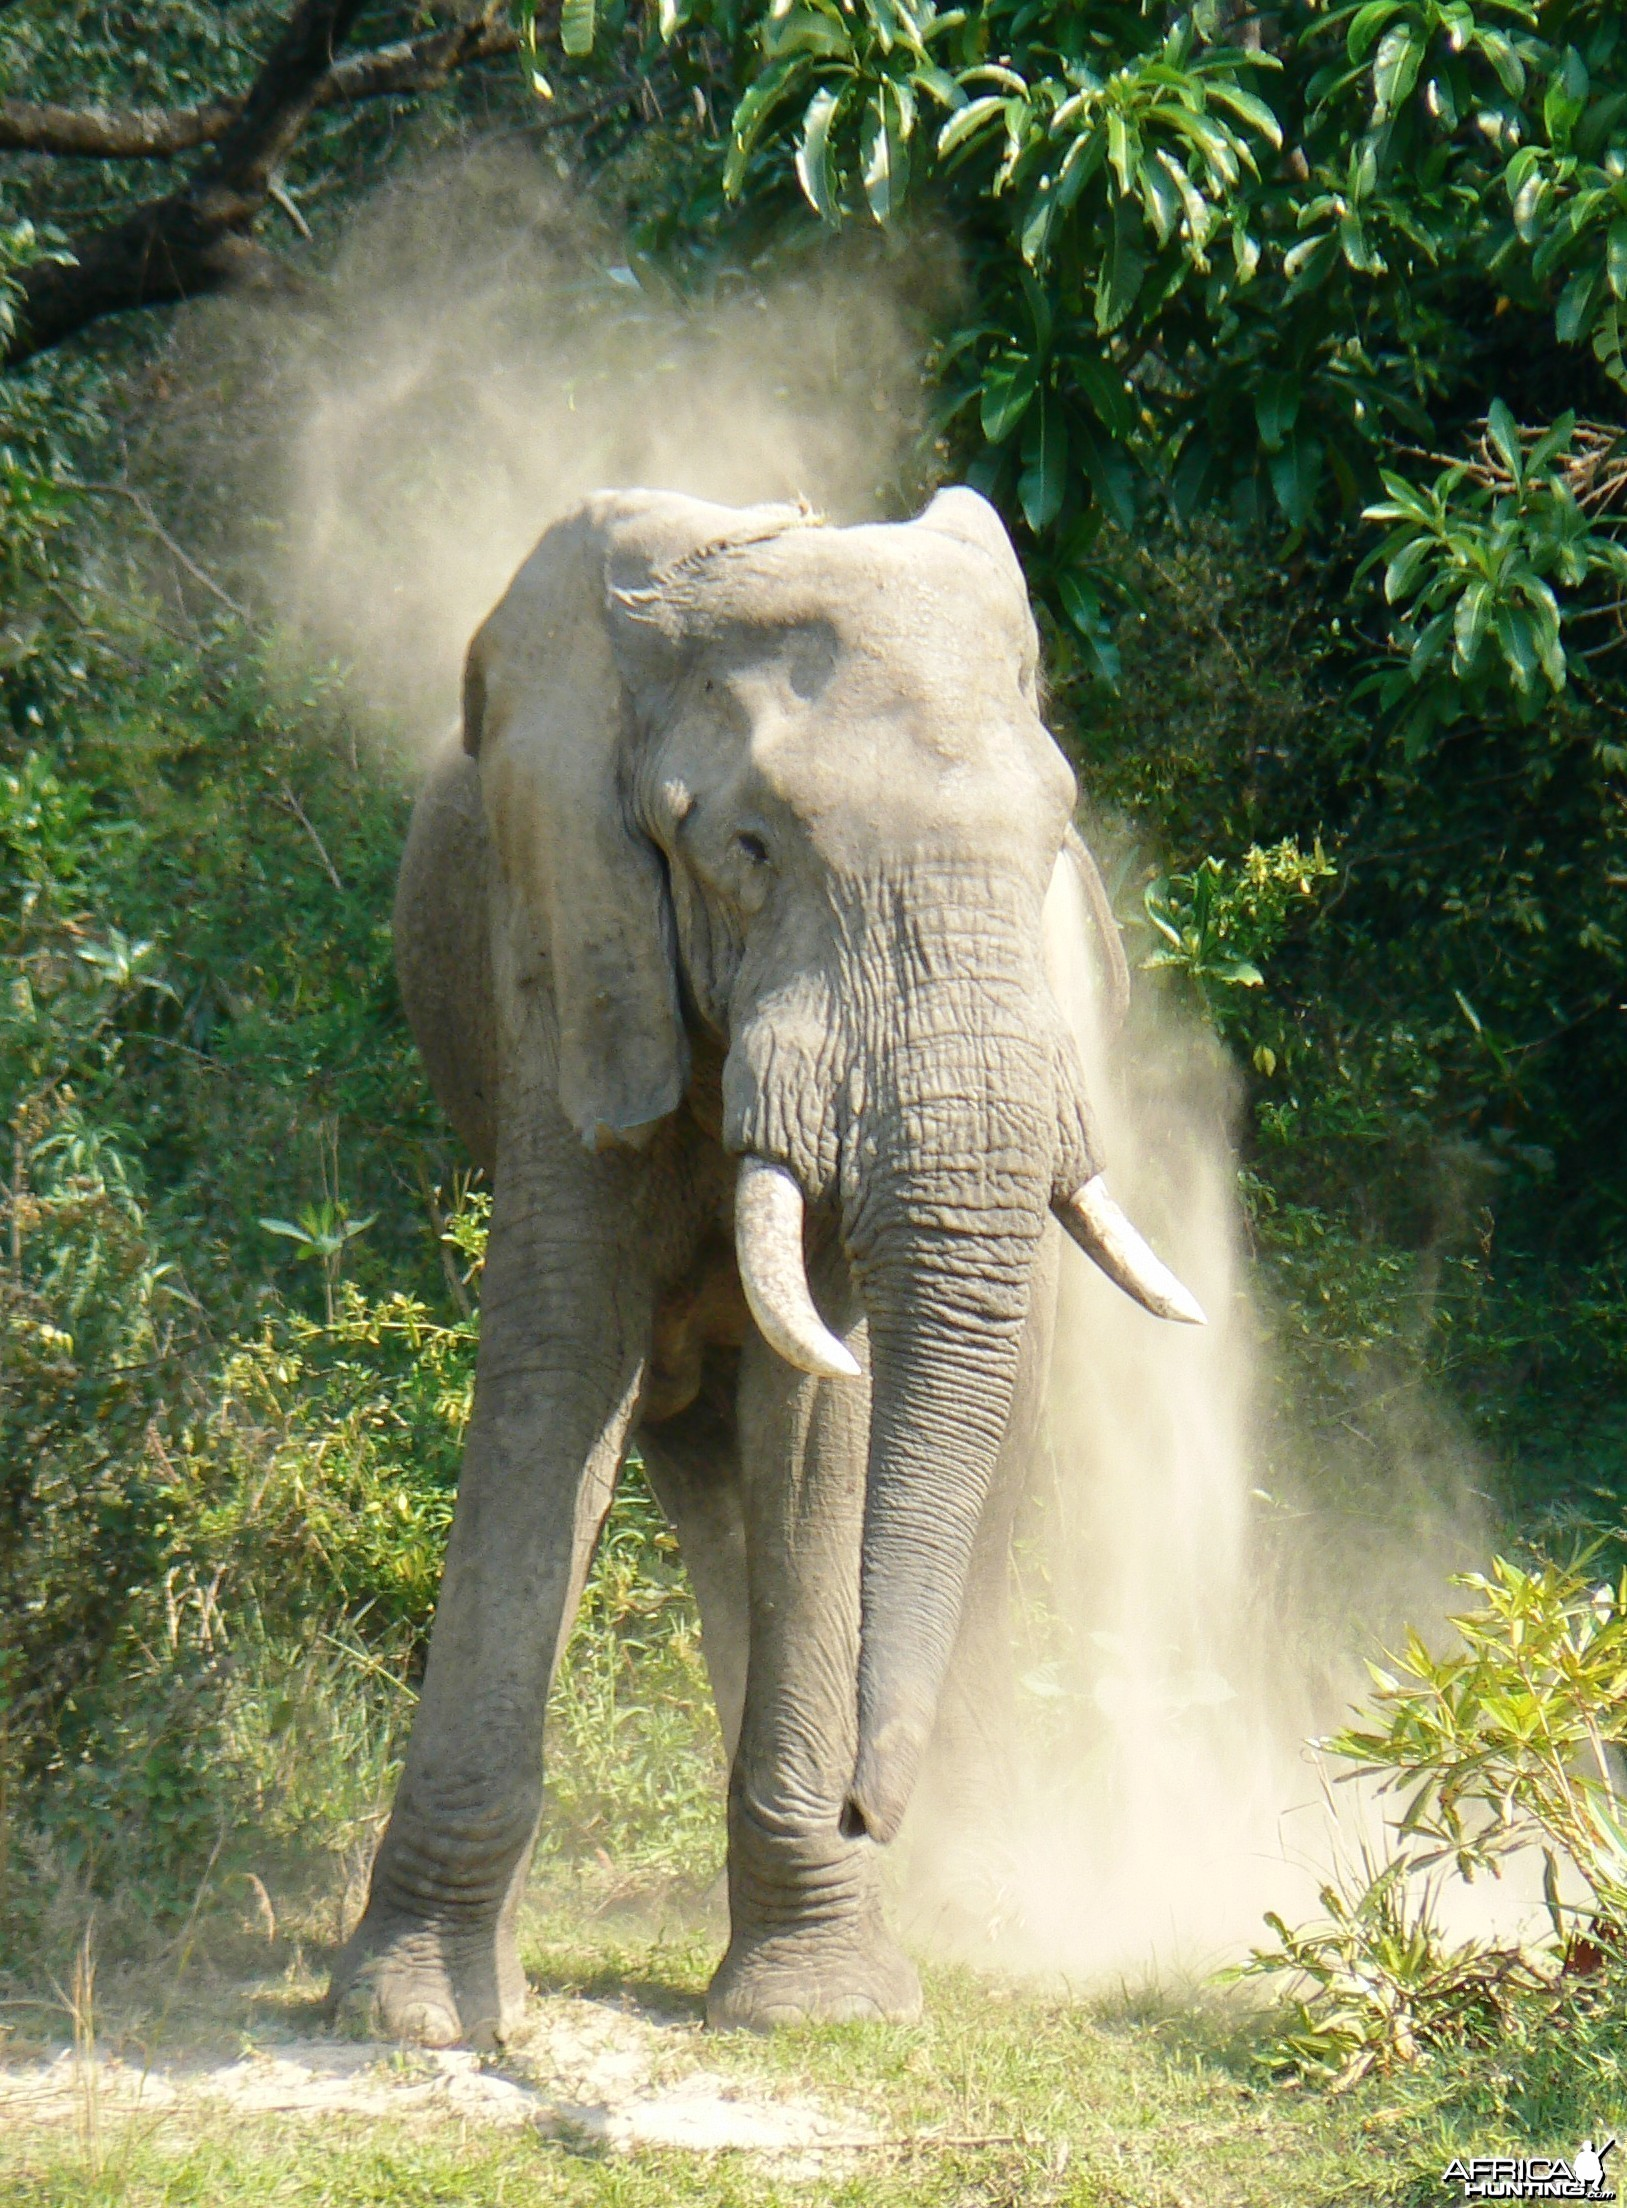 Dust shower... Elephant in Tanzania